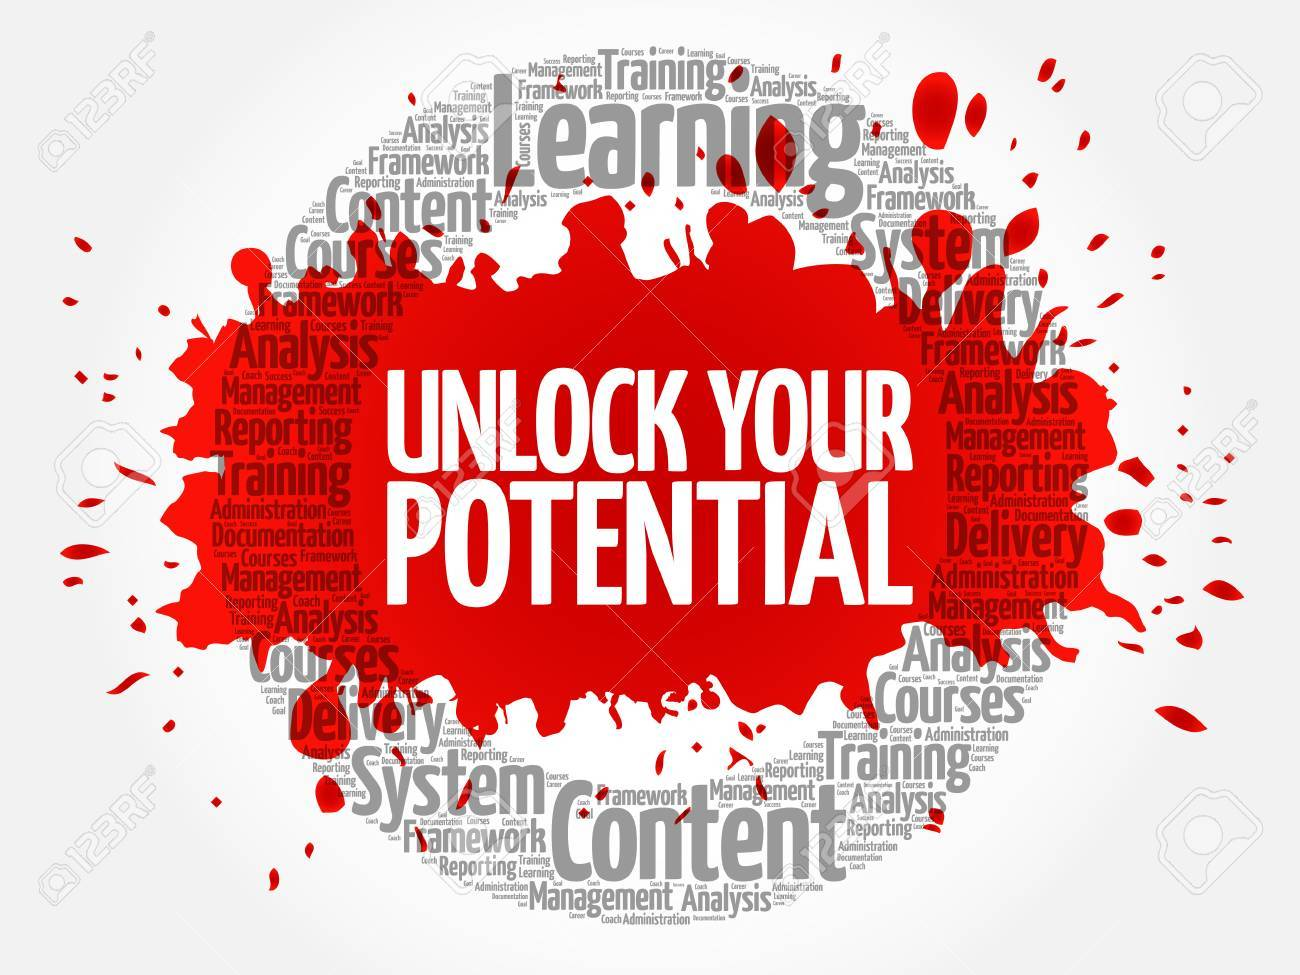 Unlock your potential circle word cloud, business concept - 71363281